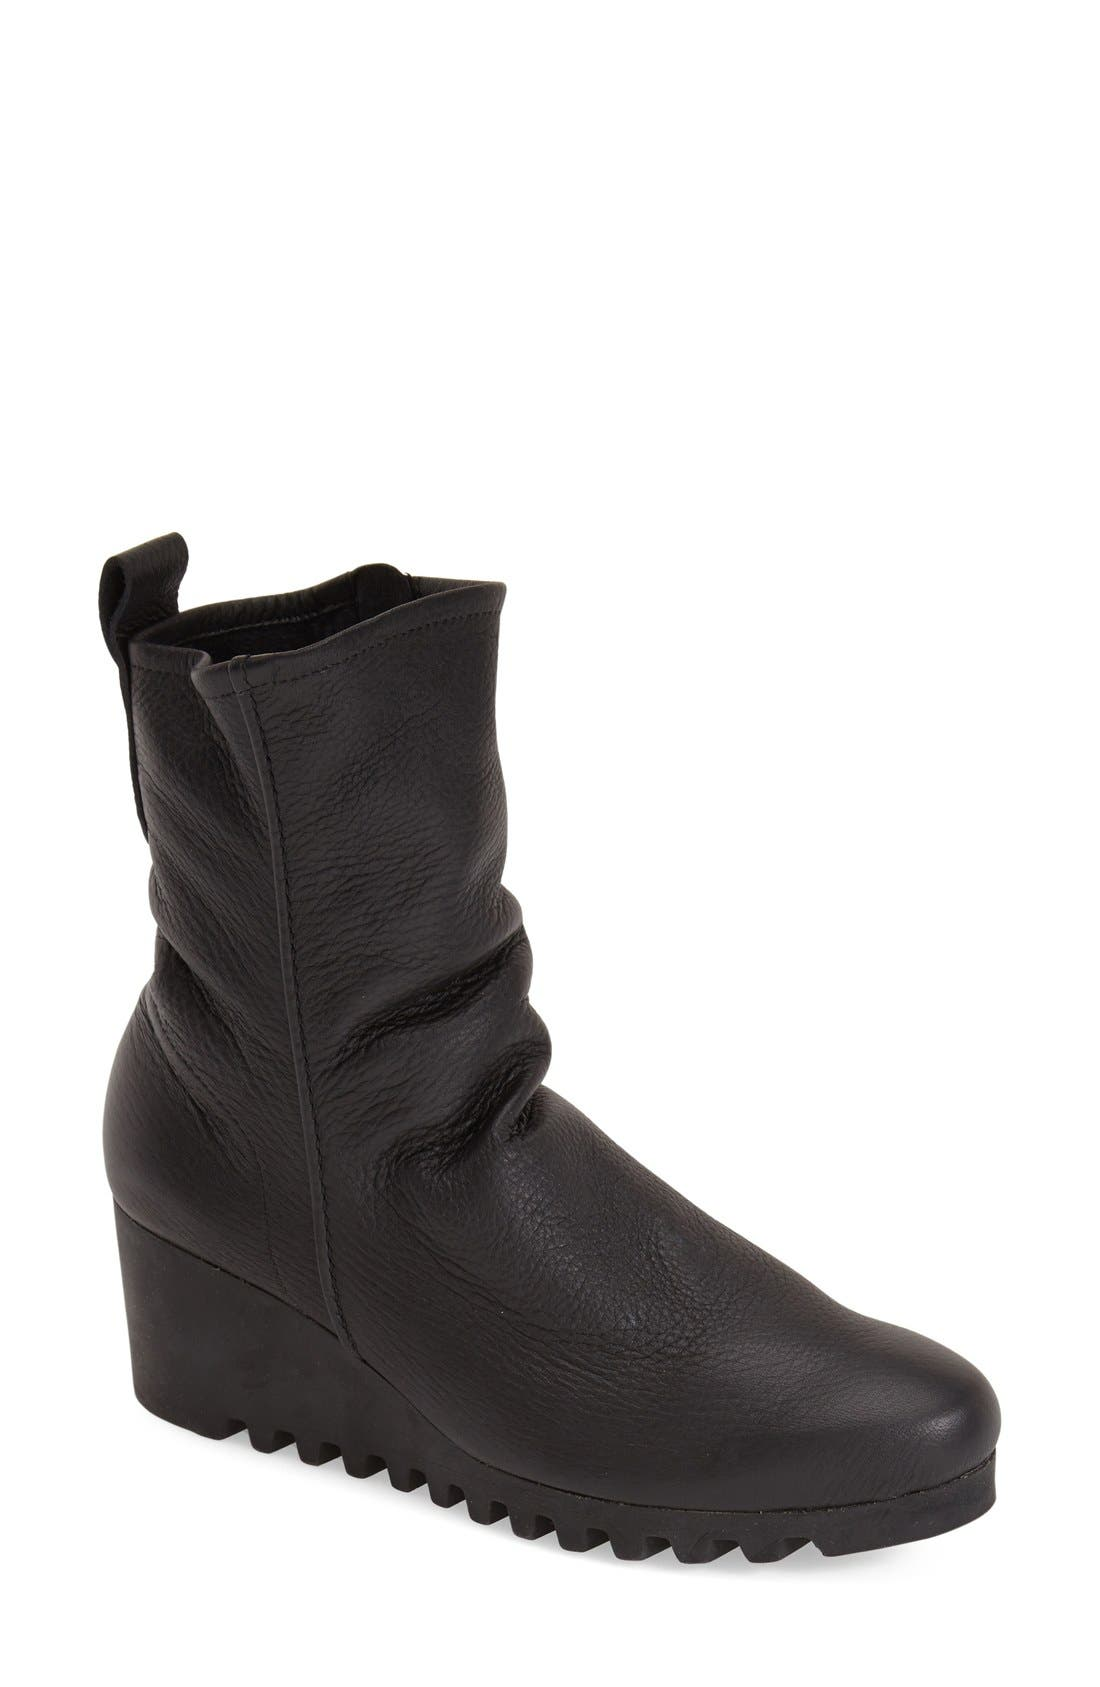 'Larazo' Bootie,                         Main,                         color, BLACK LEATHER